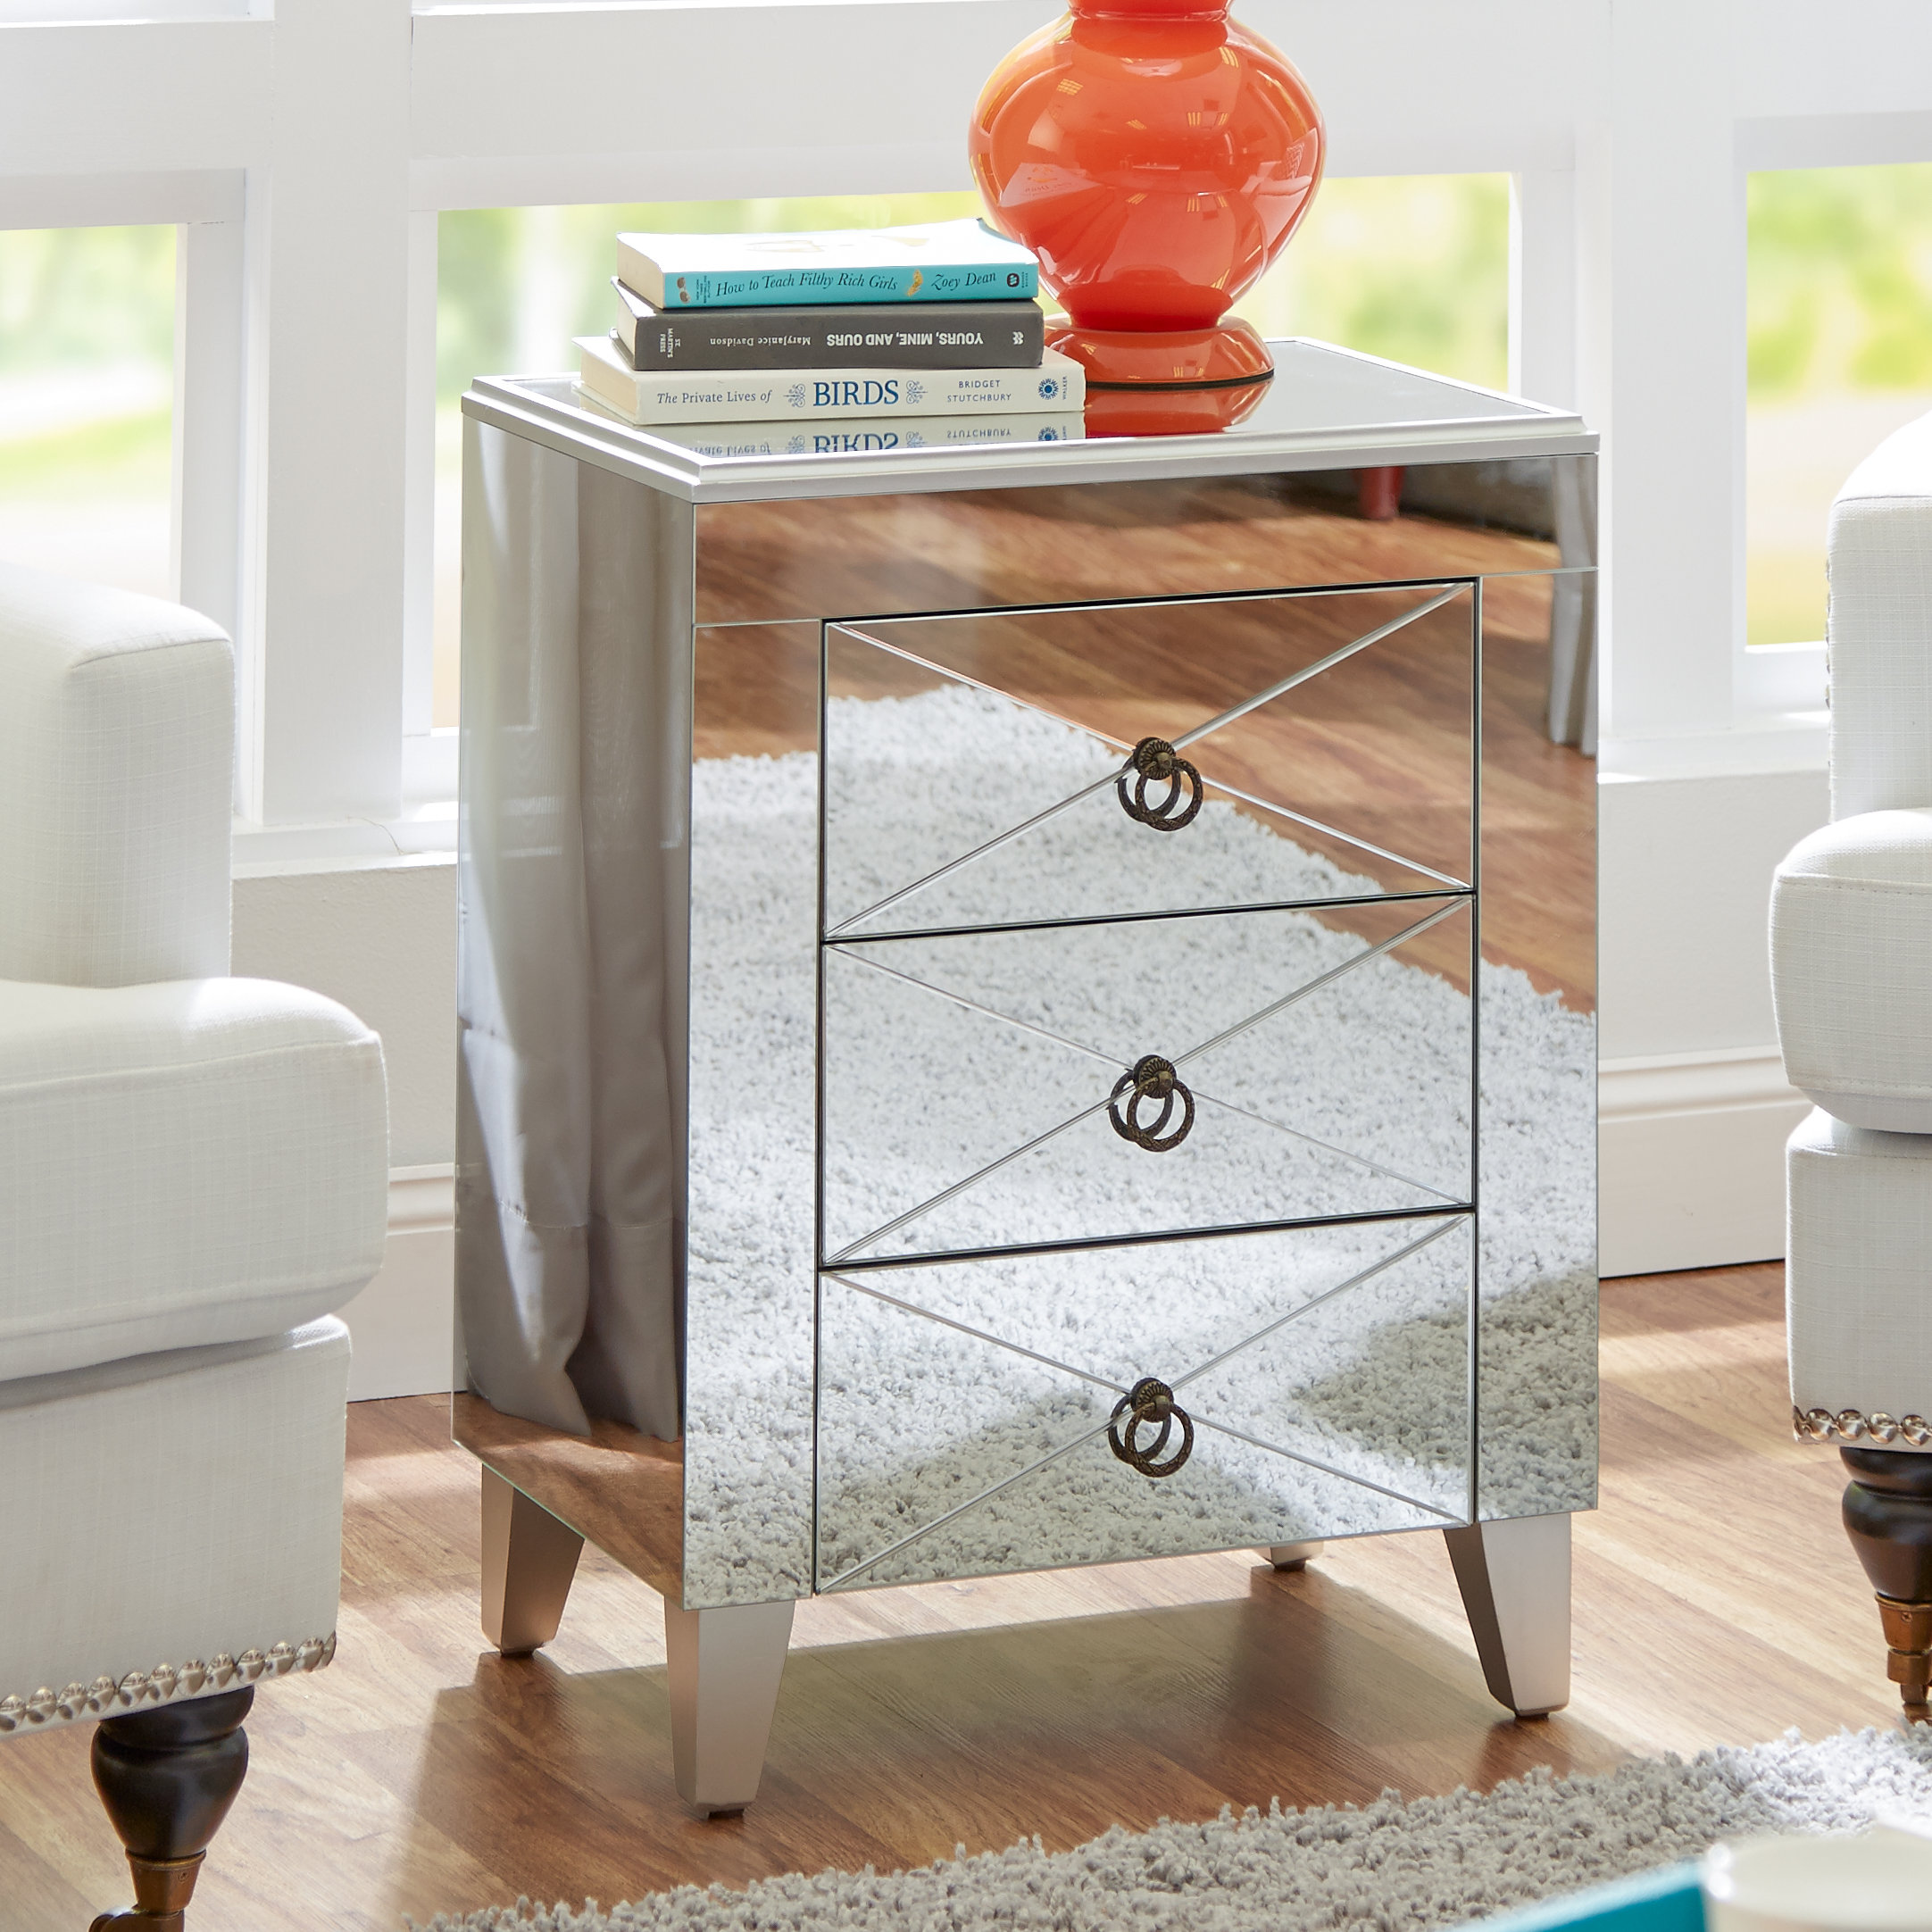 glass door end table linnea with storage zoey night accent baskets walnut small armchairs for living room two drawer mirrored bedside decorative home decor grohe rainshower target